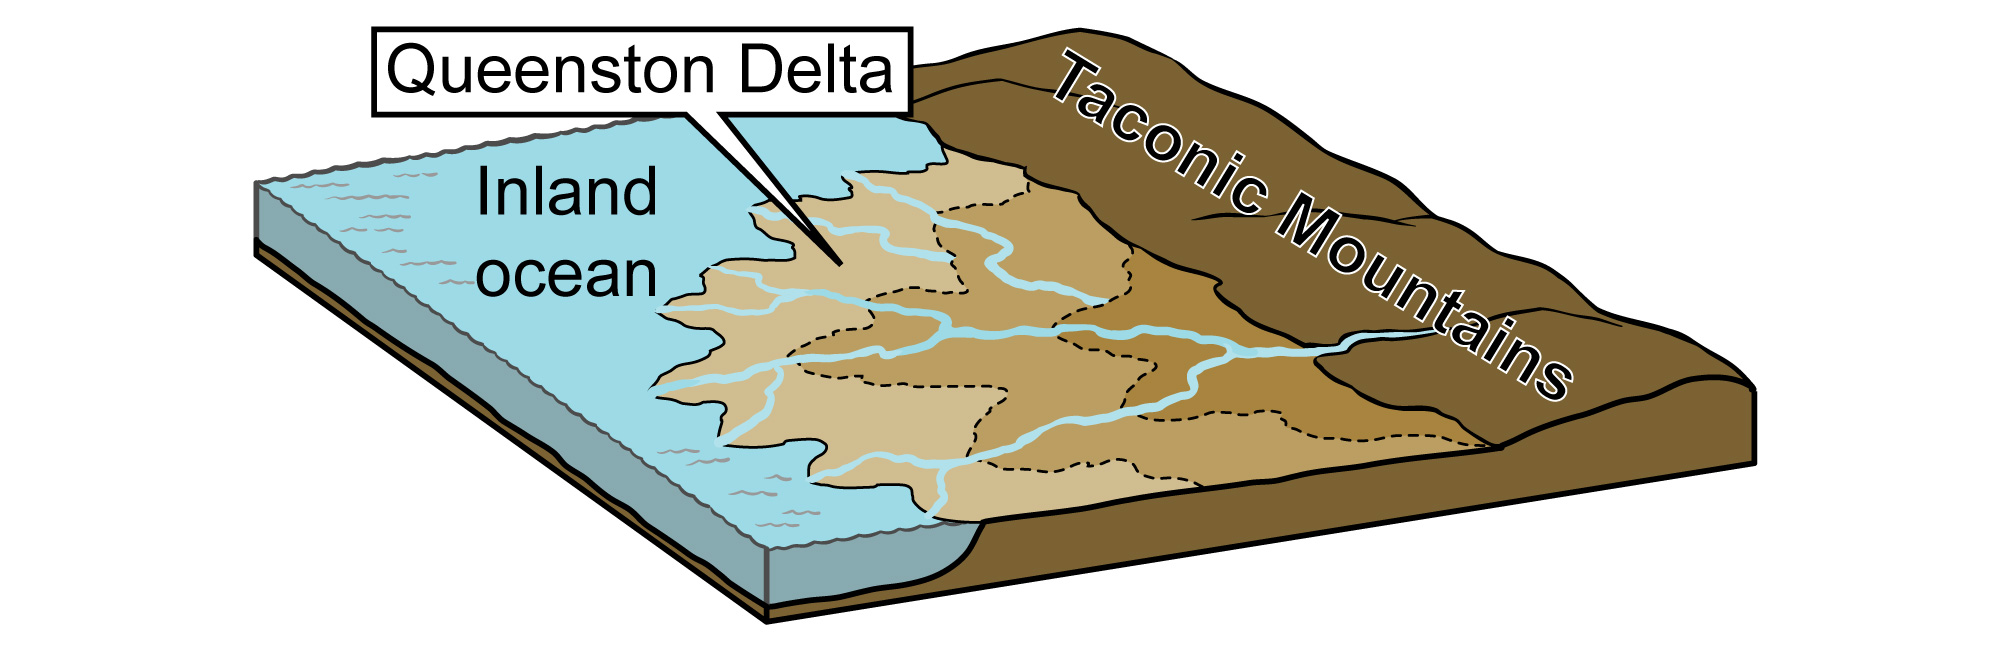 Illustration of the Queenston Delta forming from the erosion of sediments off of the Taconic Mountains.